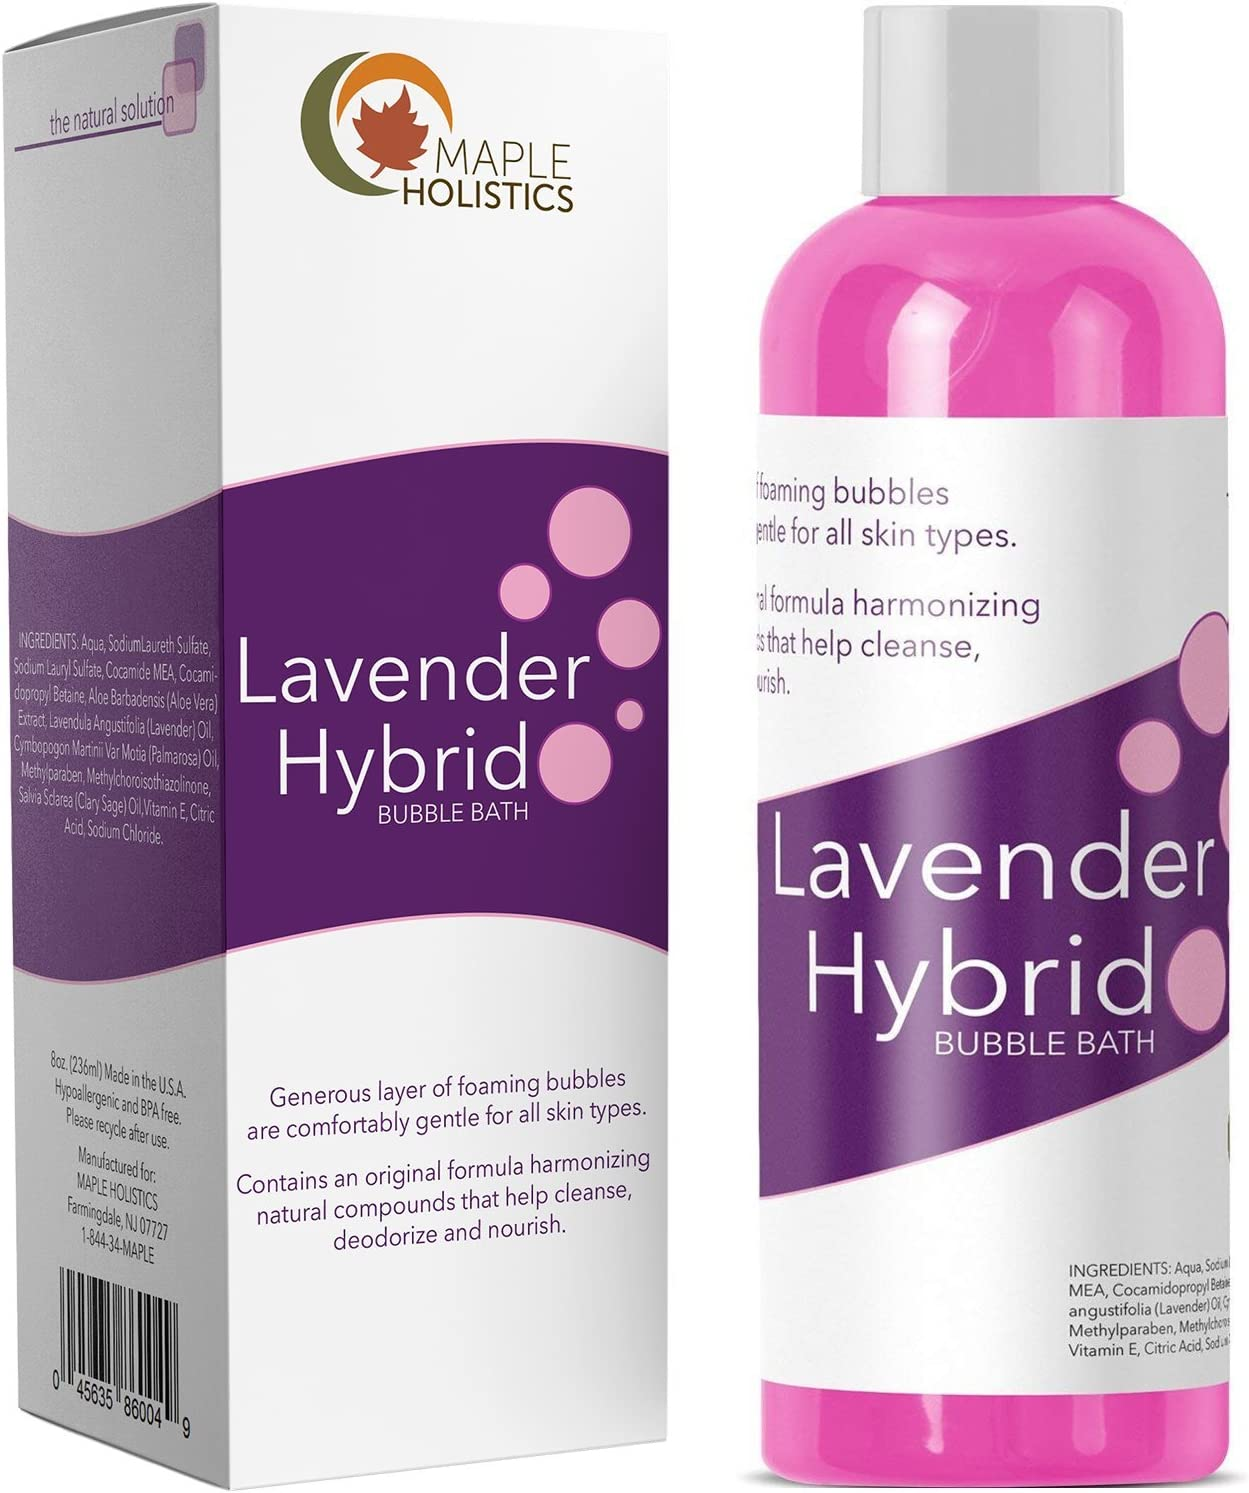 Relaxing Bubble Bath for Sleep – Pure Lavender Essential Oil and Aloe Vera – Aromatherapy Bath Soak for Dry Skin and Sore Muscles – Hypoallergenic Natural Skin Care for Men Women with Sensitive Skin: Health & Personal Care